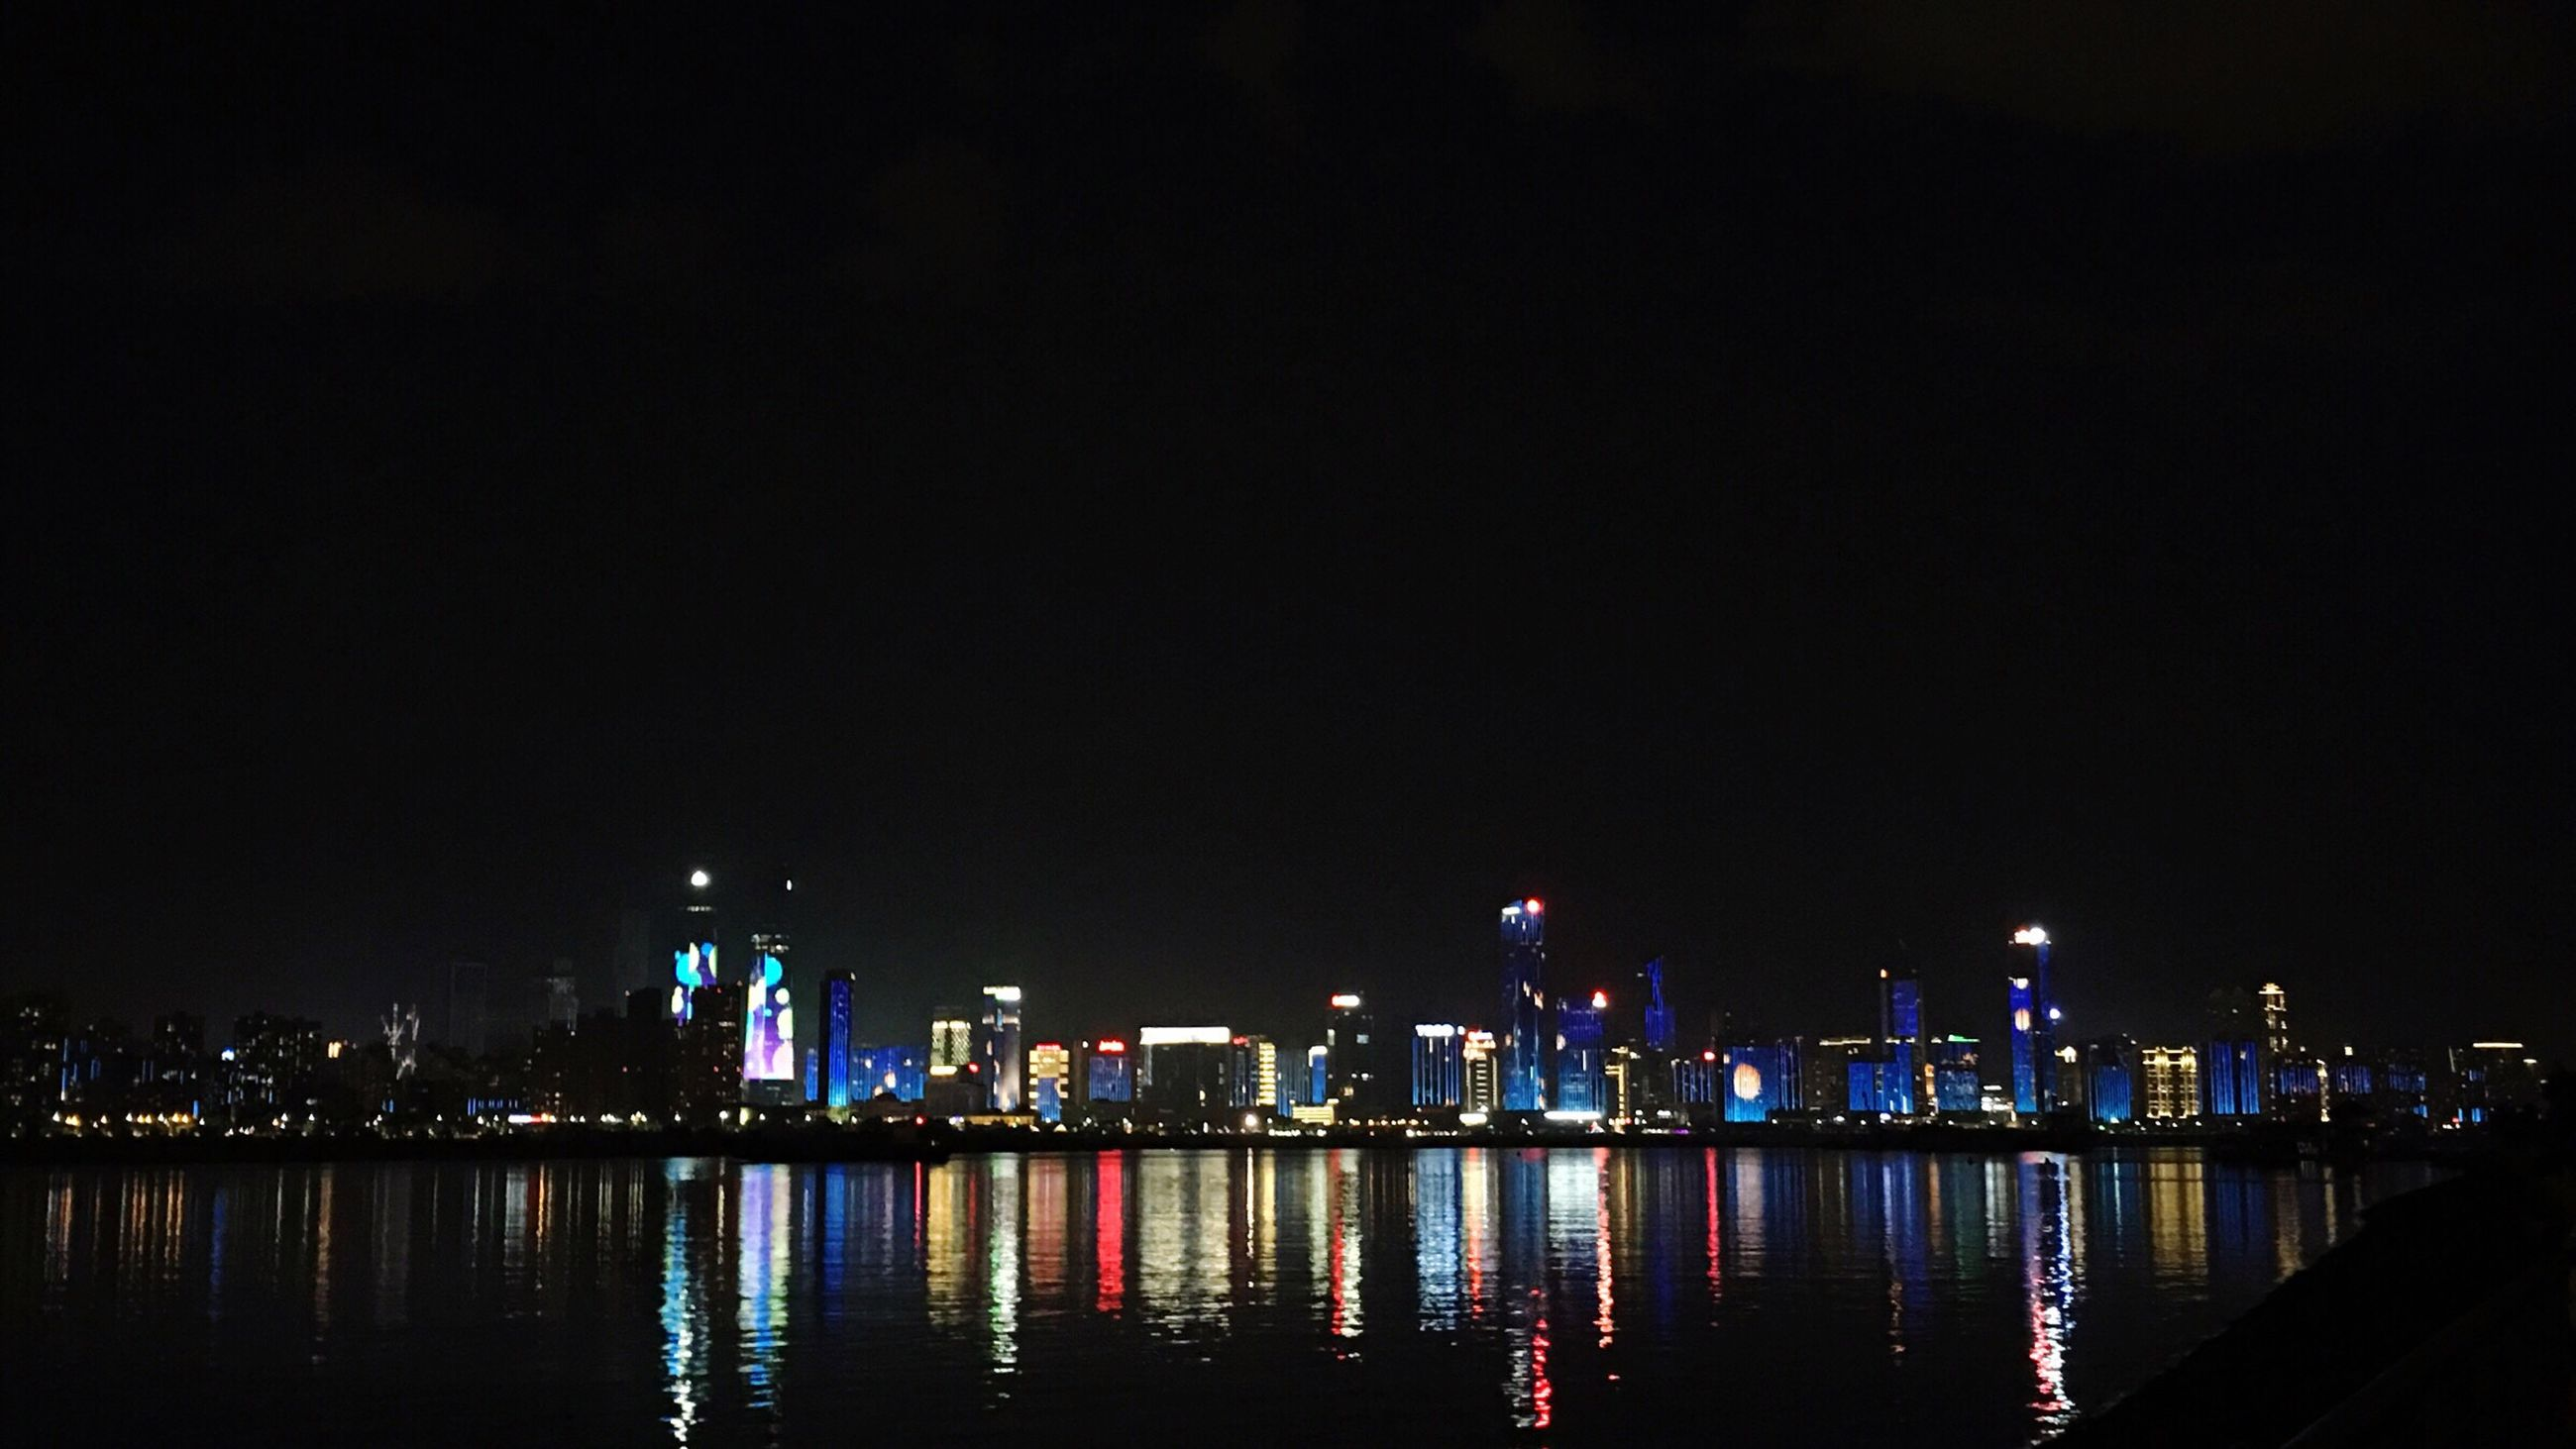 night, illuminated, architecture, building exterior, built structure, city, skyscraper, cityscape, copy space, travel destinations, urban skyline, water, waterfront, reflection, no people, sky, city life, modern, river, outdoors, clear sky, nature